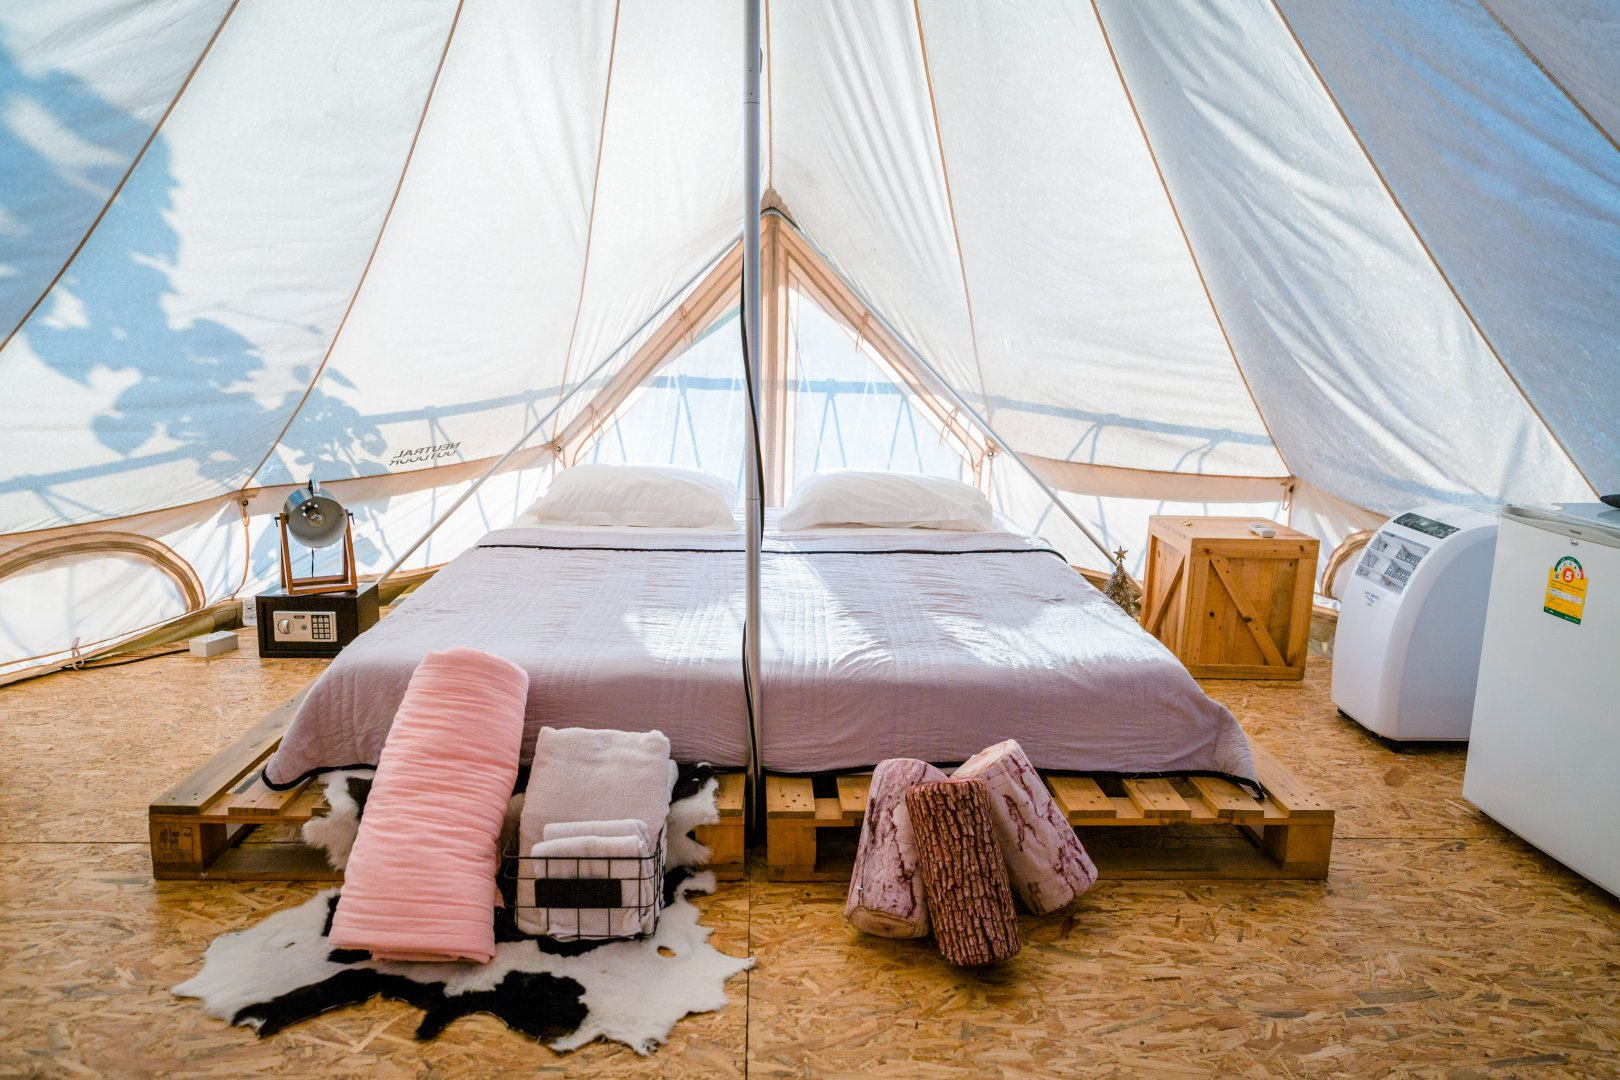 Tent Room Canopy bed Yurt Furniture Bed Building Vacation Interior design Suite